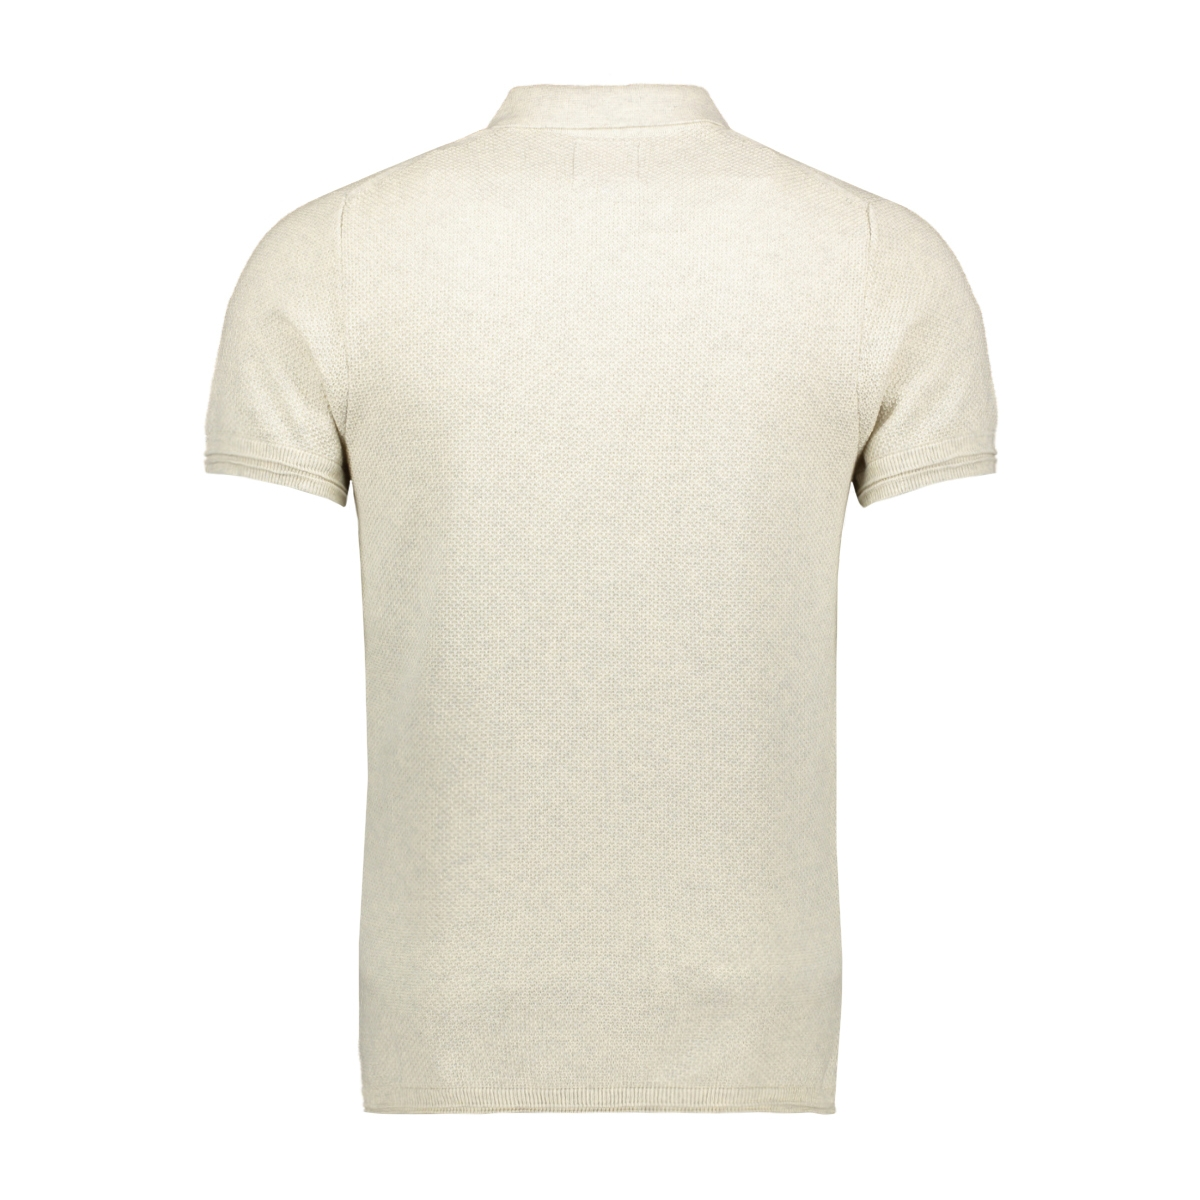 edit s s knitted polo m6110020a superdry polo light grey marl